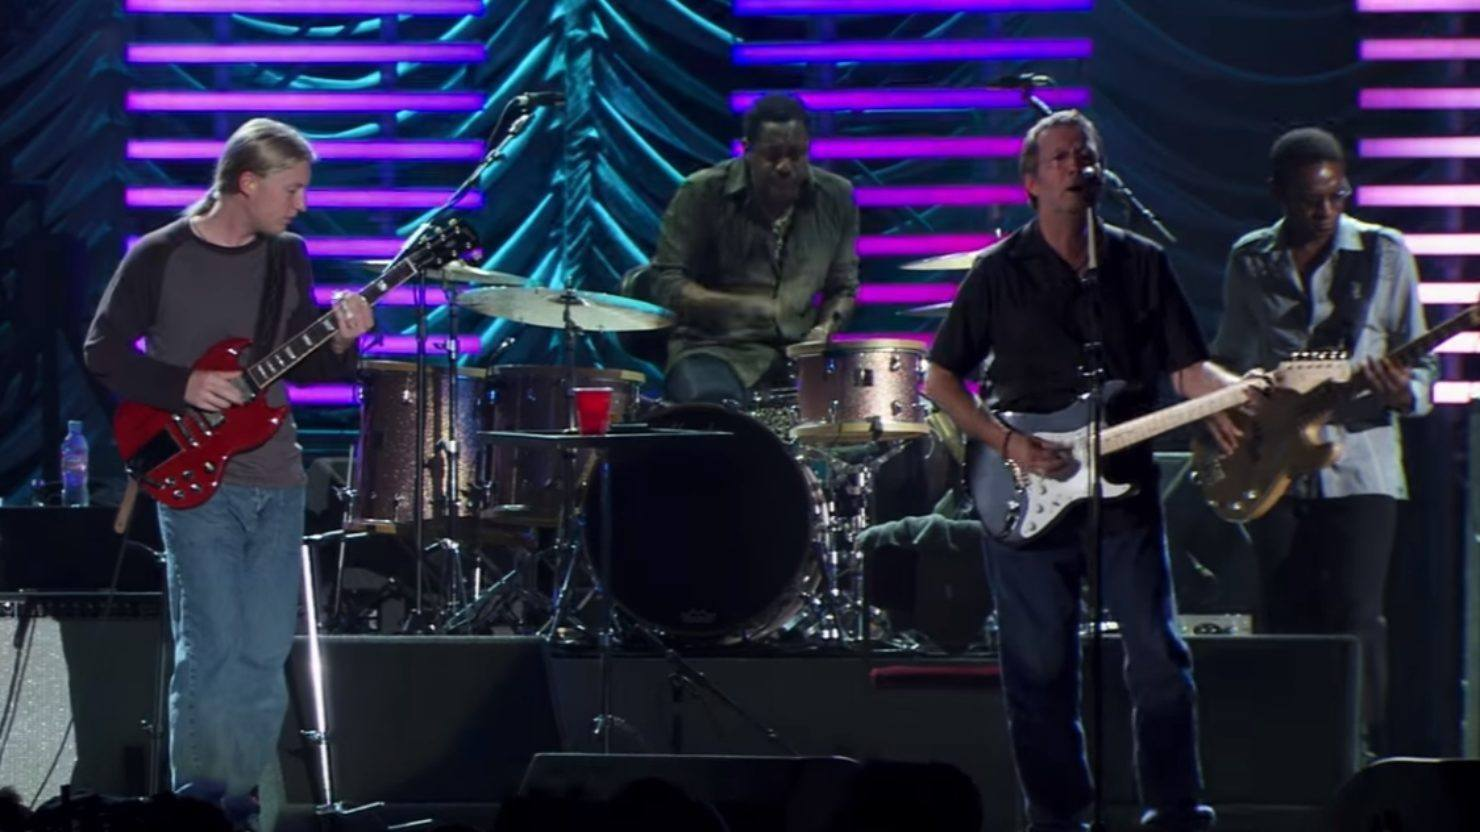 The Robert Cray Band - I Can't Quit